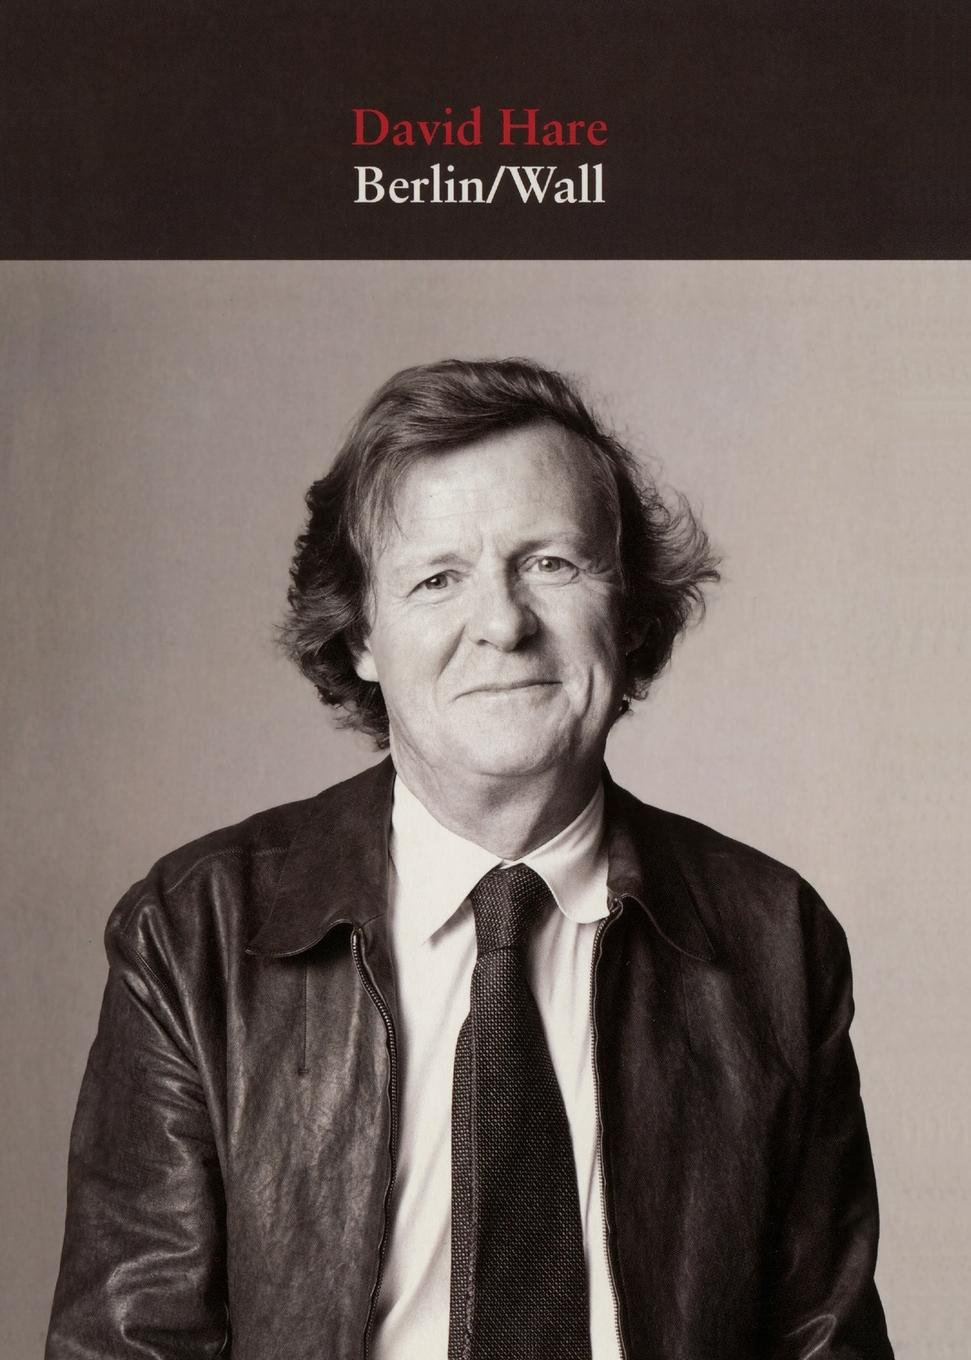 Berlin/Wall. David Hare